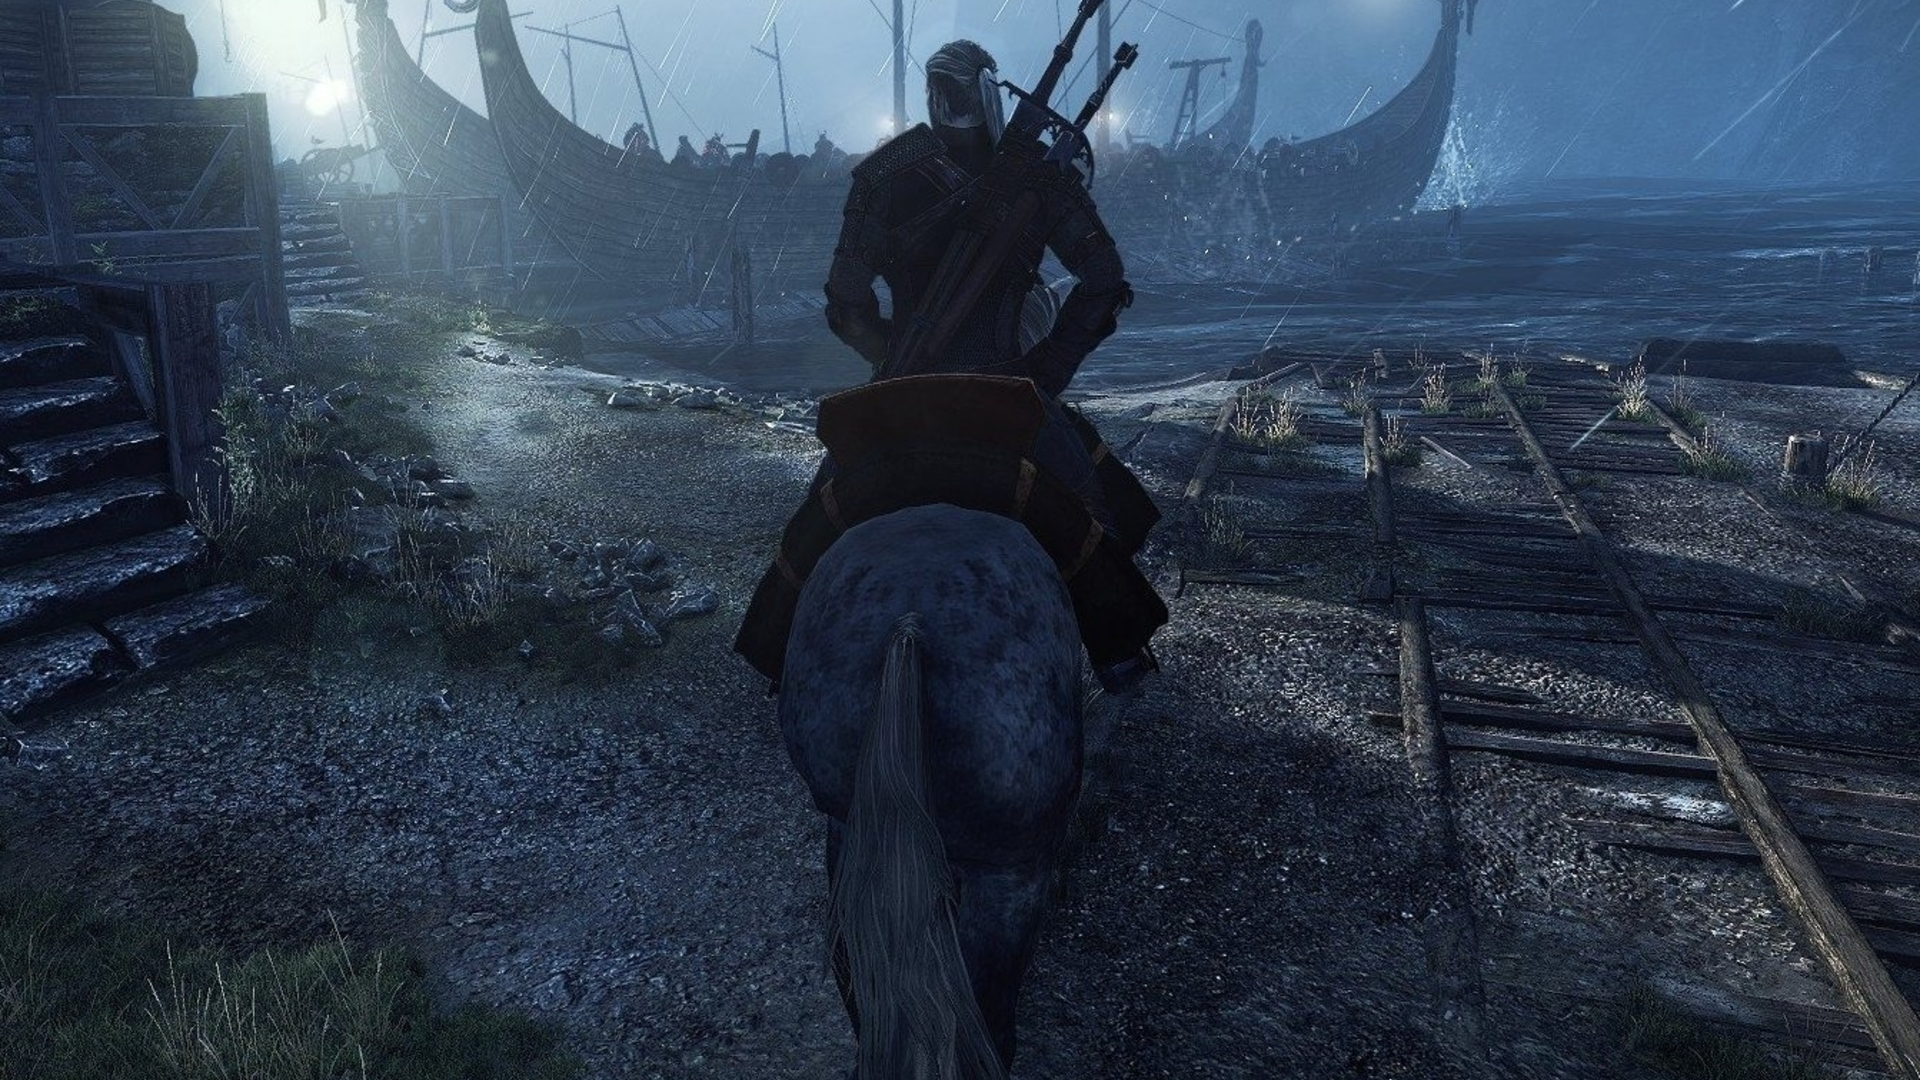 How much harder is The Witcher 3 NG+? Here's some gameplay and impressions